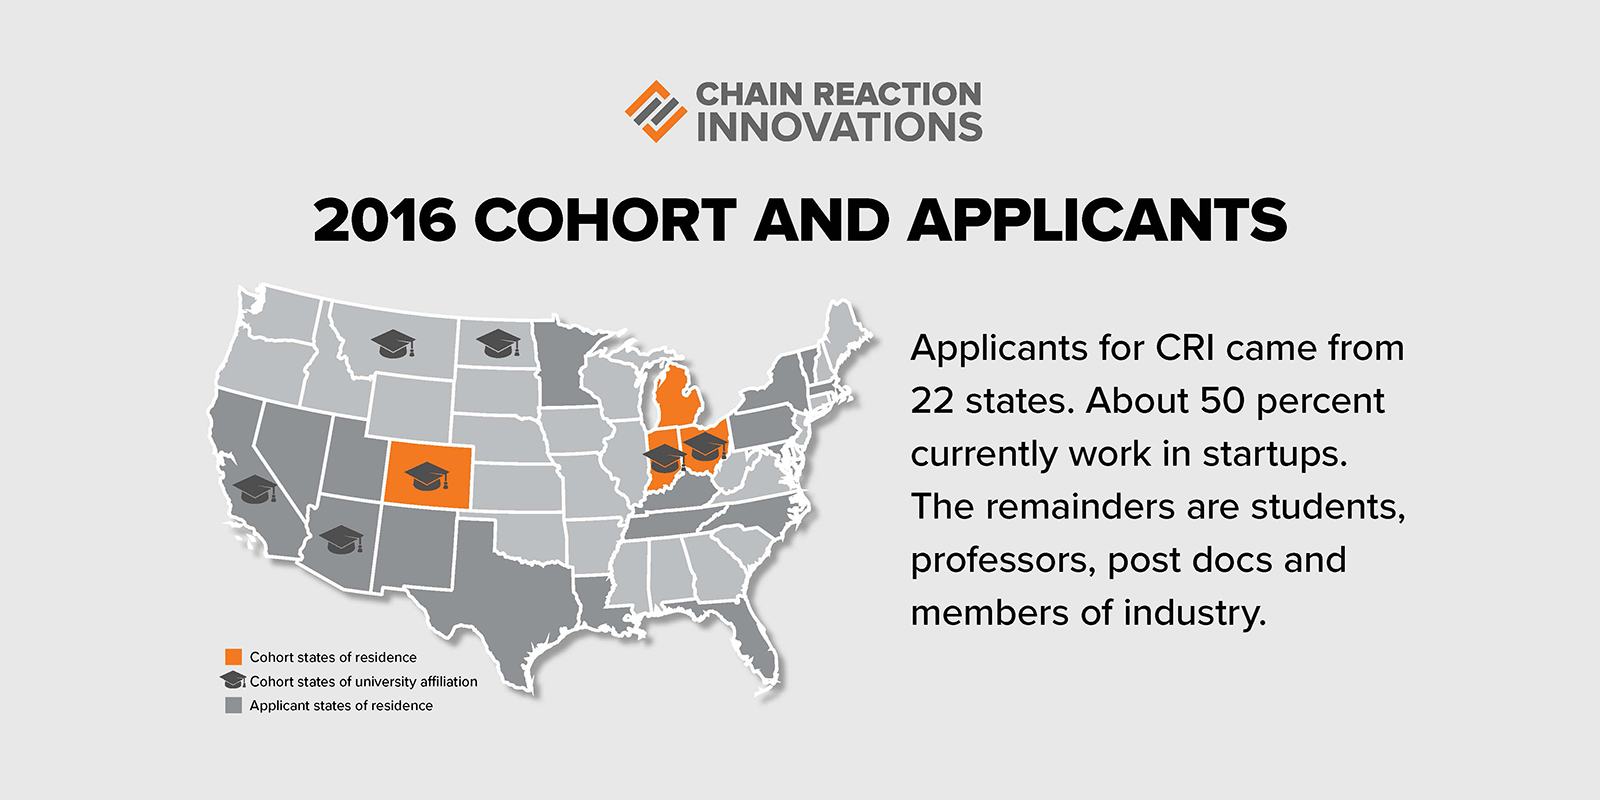 2016 Cohort and Applicants - Applicants for CRI came from 22 states. About 50% currently work in startups. The remainders are students, professors, post docs and members of industry.